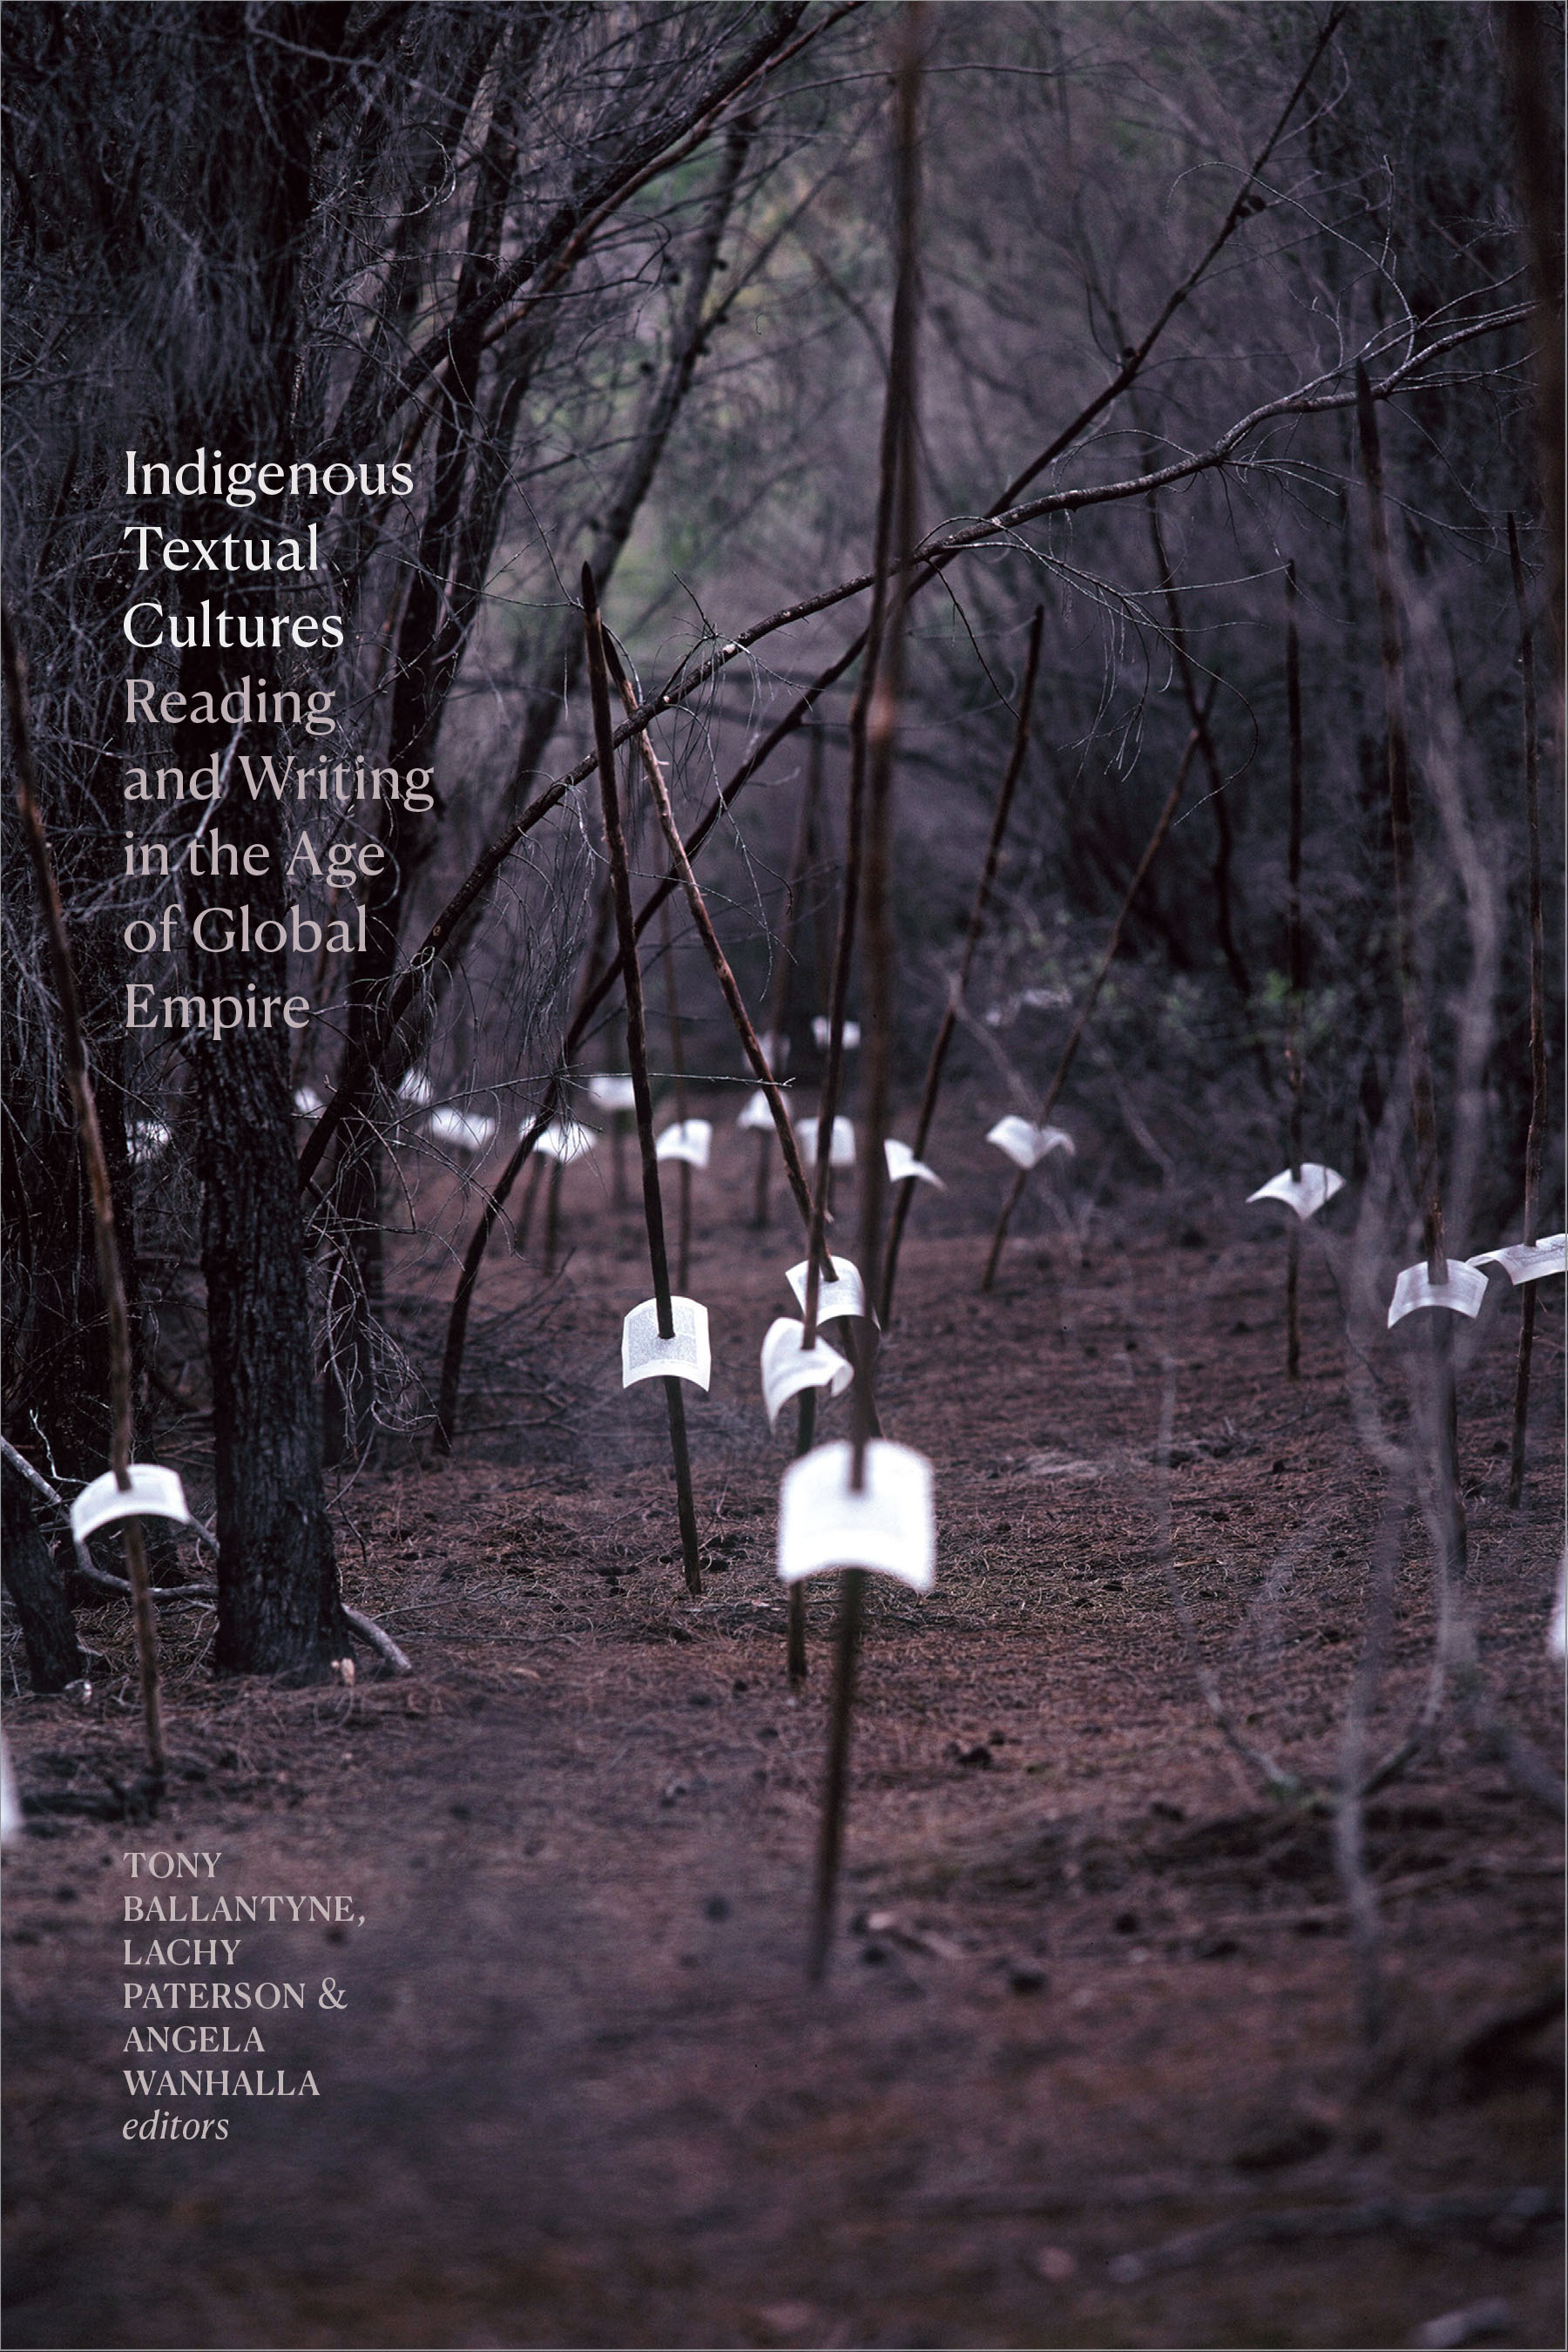 Indigenous textual cultures : reading and writing in the age of global empire / Tony Ballantyne, Lachy Paterson and Angela Wanhalla, editors